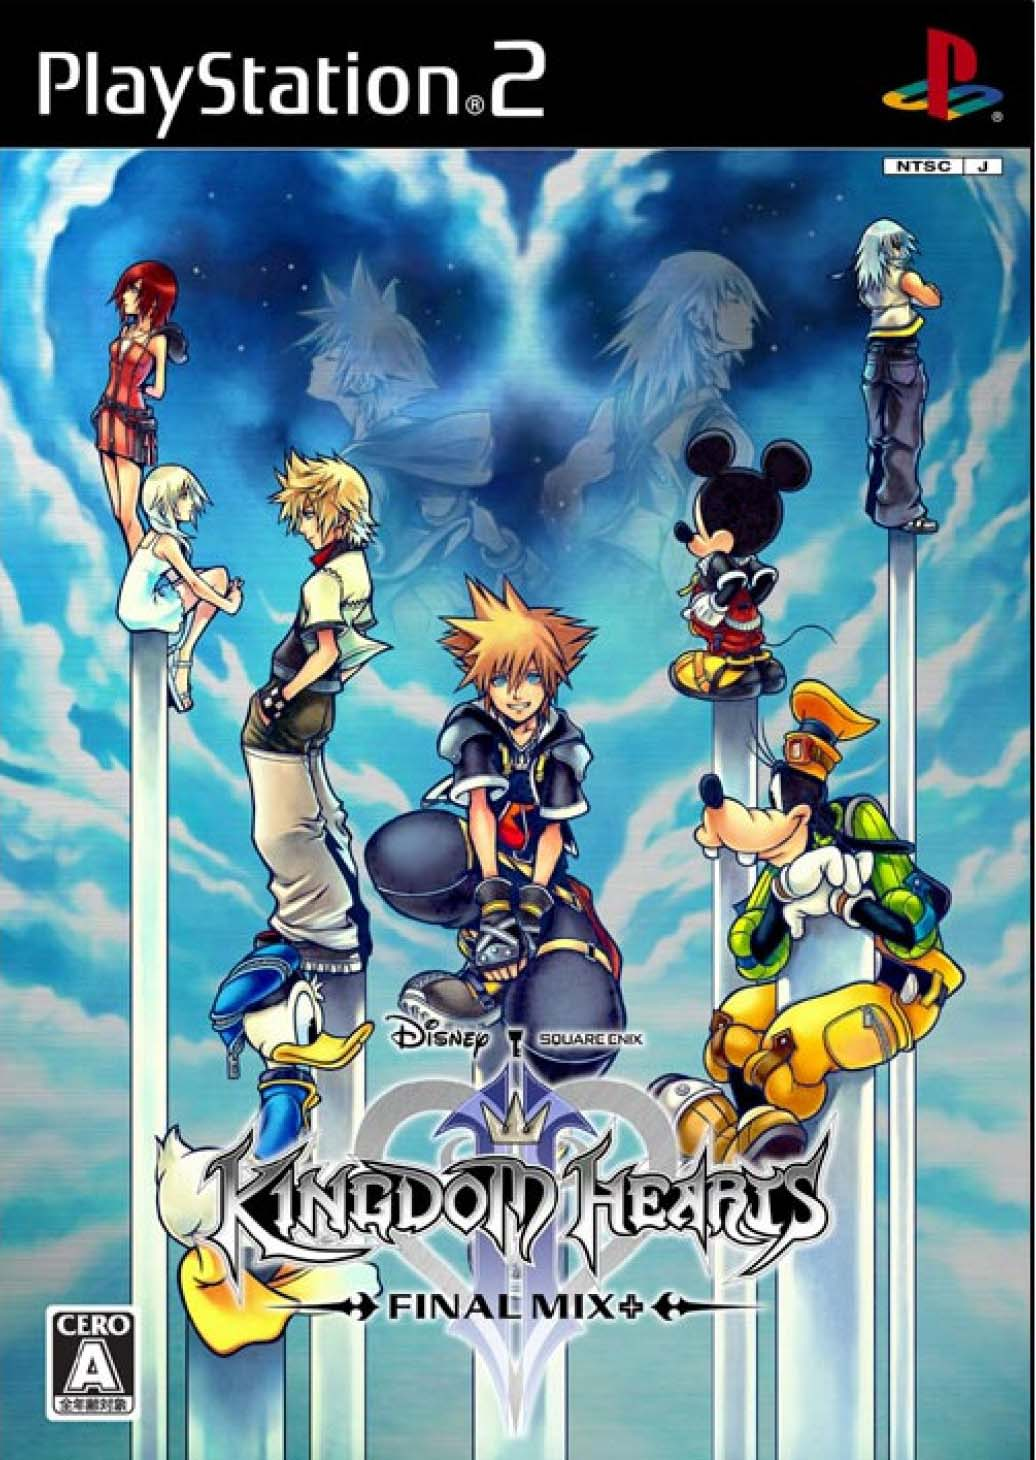 Kingdom Hearts II Final Mix +